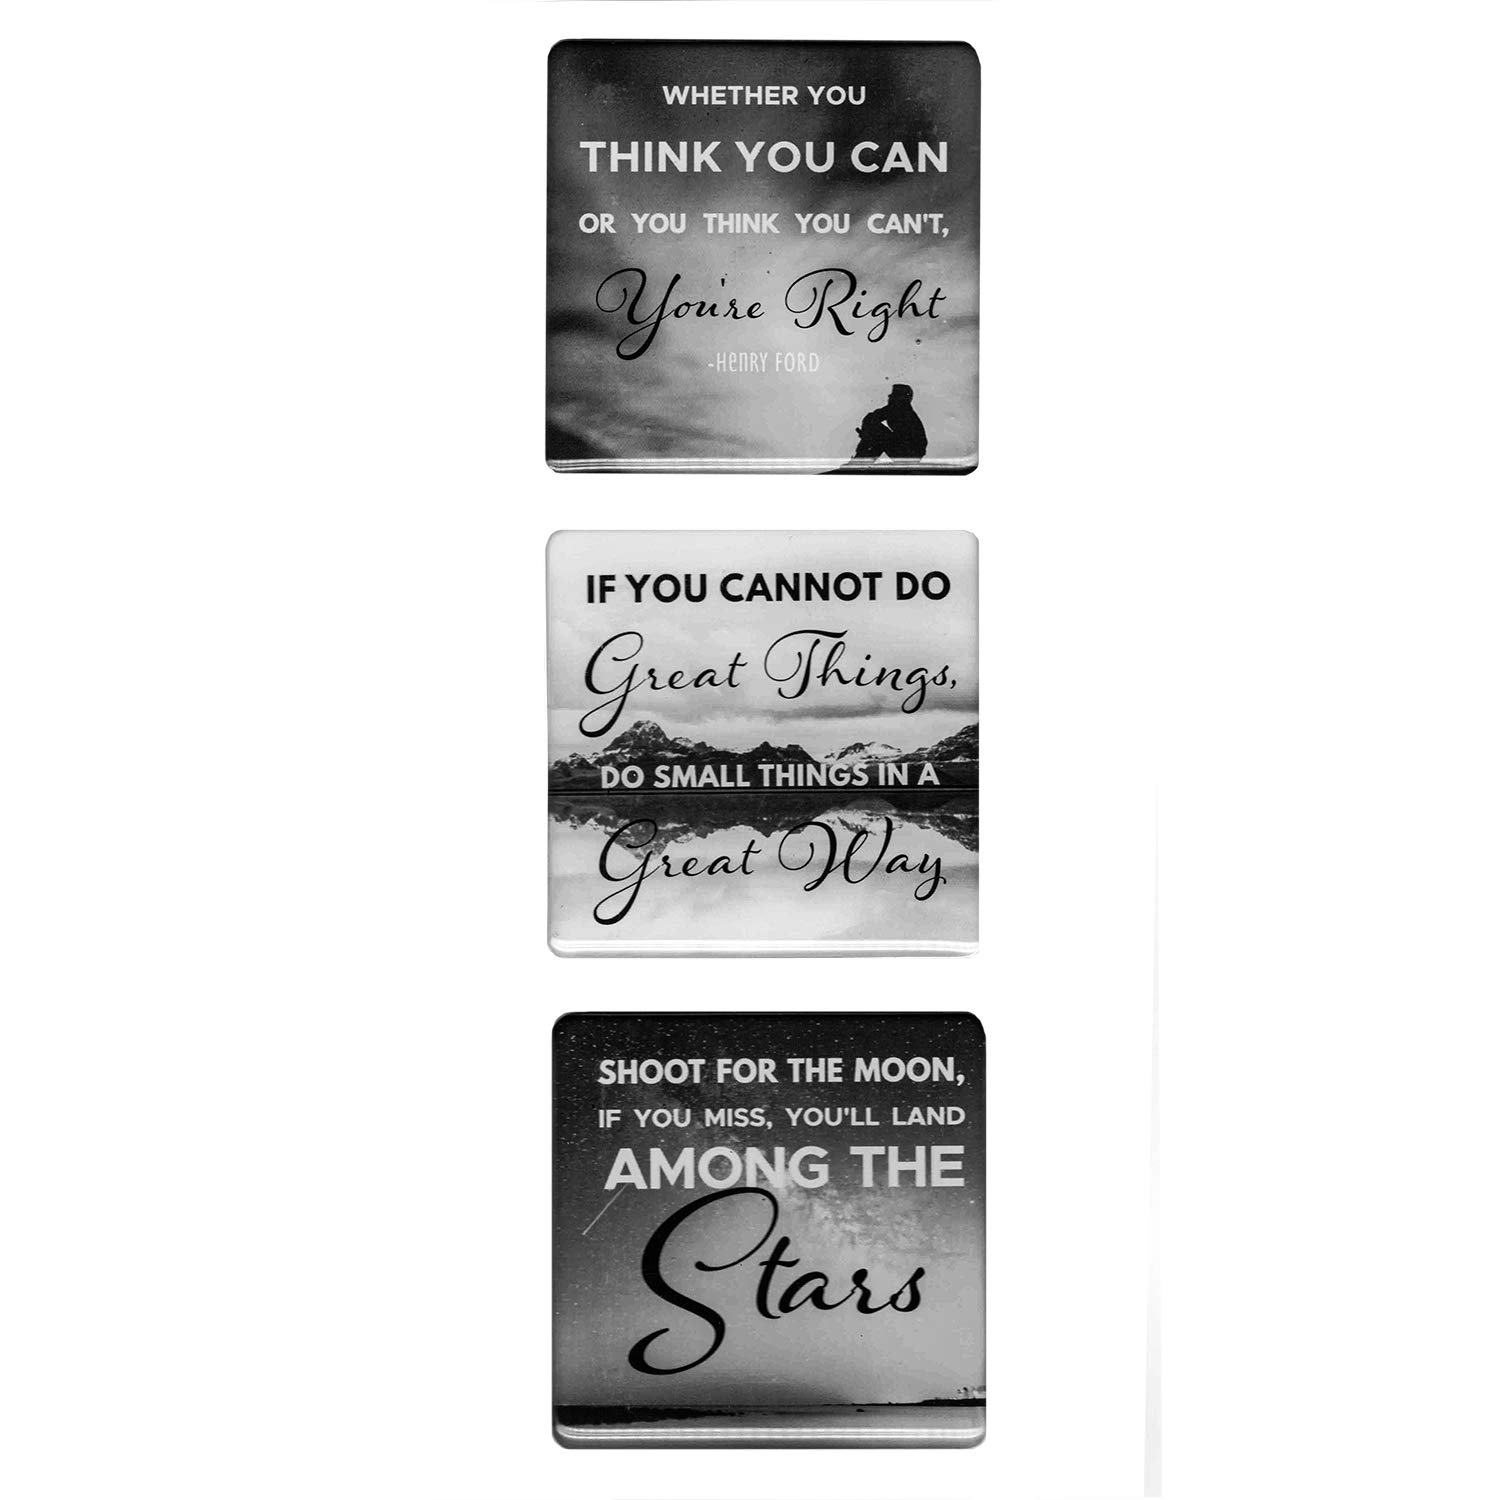 Refrigerator Magnets - Fridge Magnets With Inspiring Motivational Quotes - Montone (1)